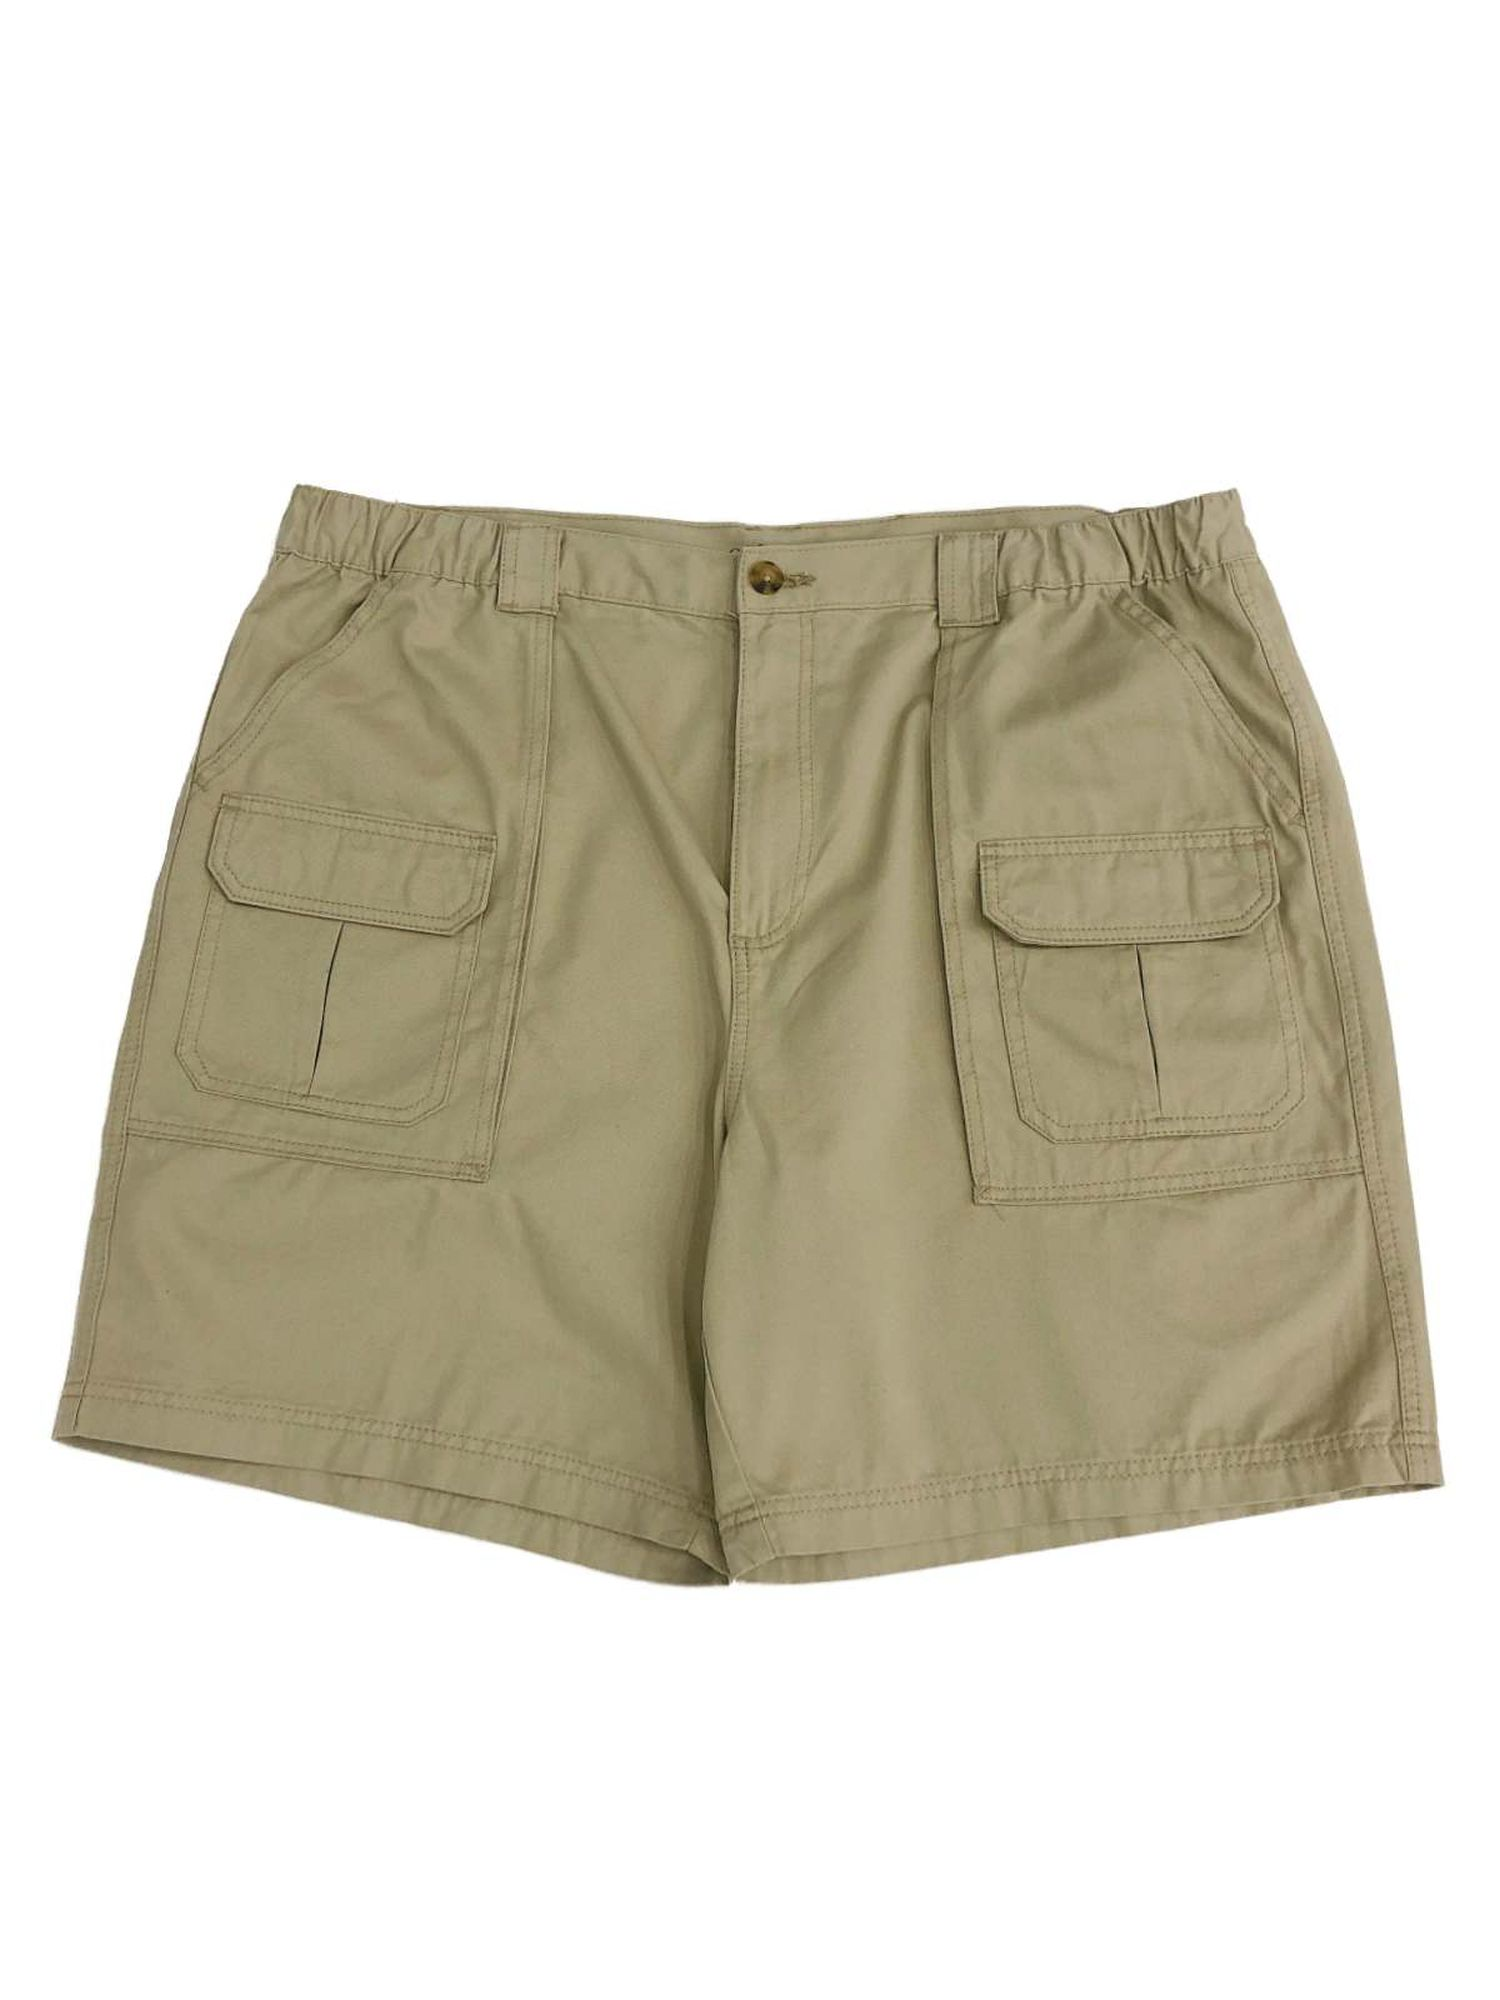 New Croft /& Barrow Men/'s Relaxed-Fit Side-Elastic Waistband Cotton Cargo Shorts